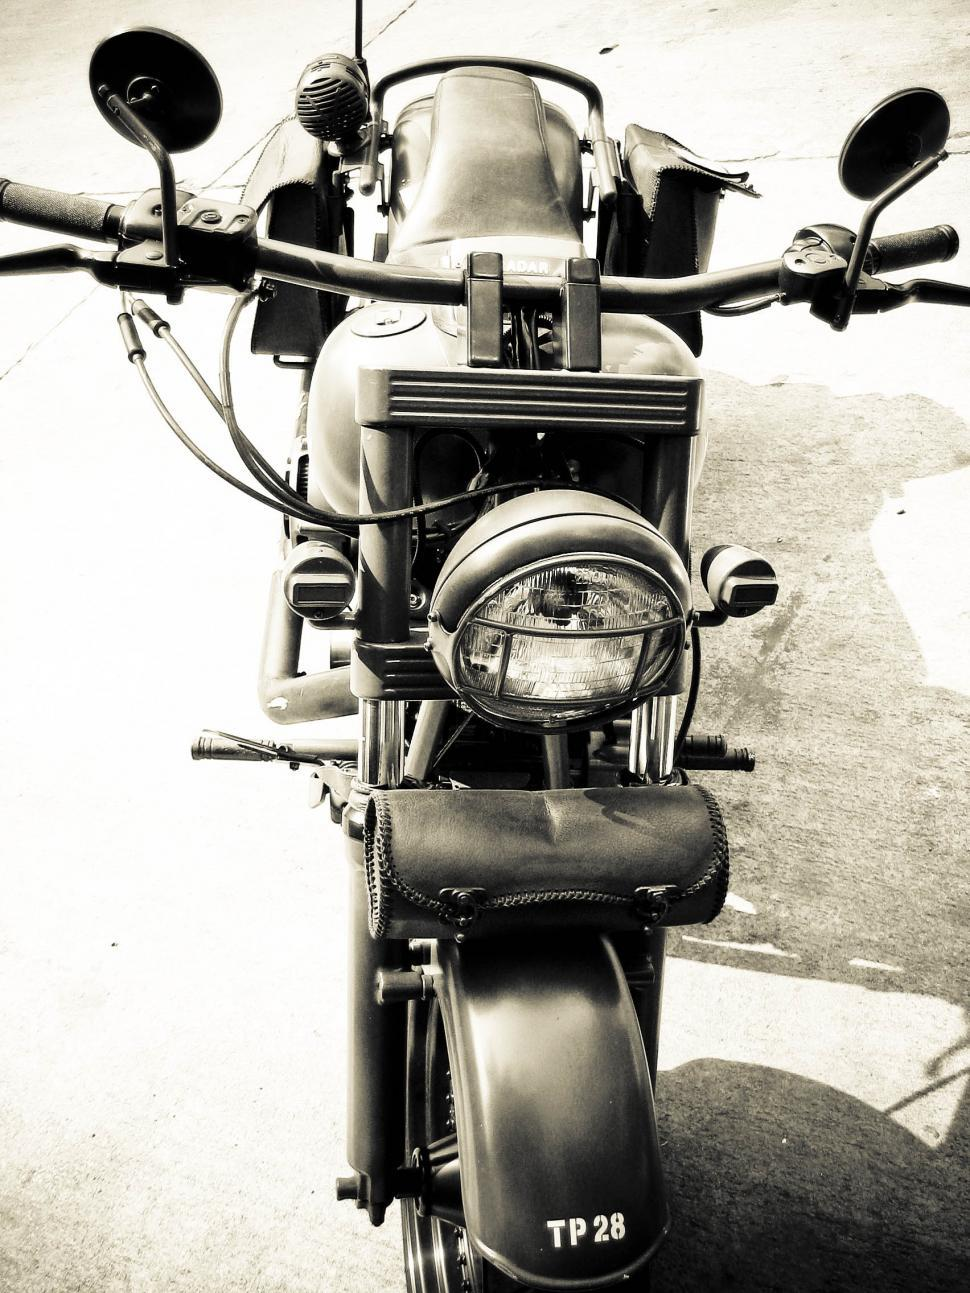 Download Free Stock HD Photo of old harley davidson Online